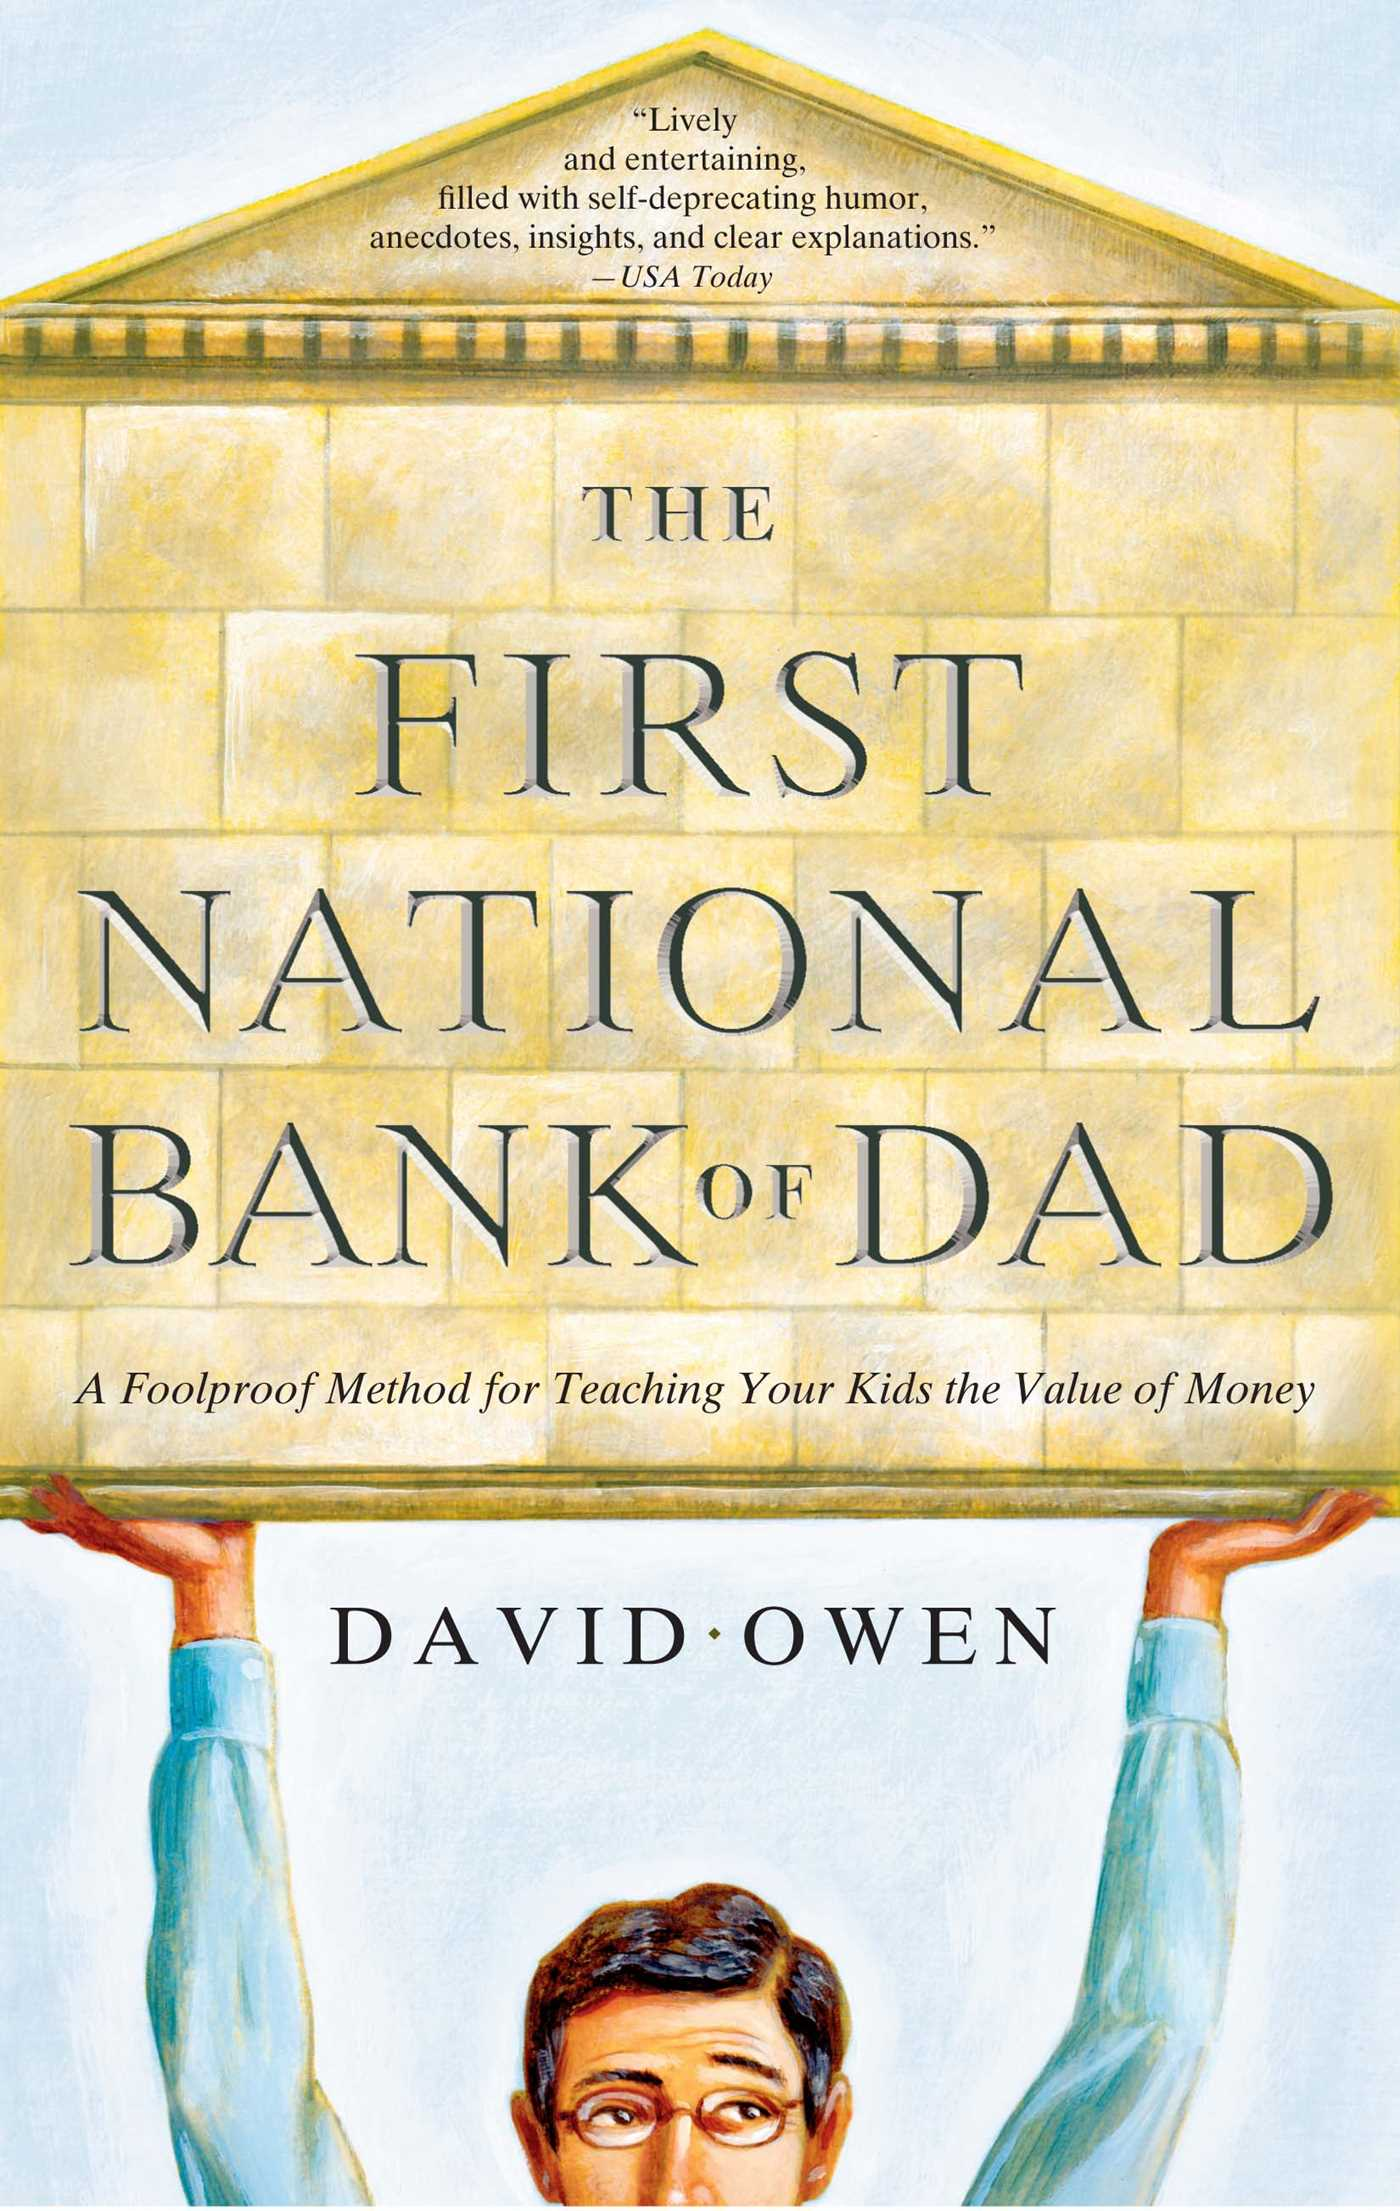 The First National Bank of Dad | Book by David Owen